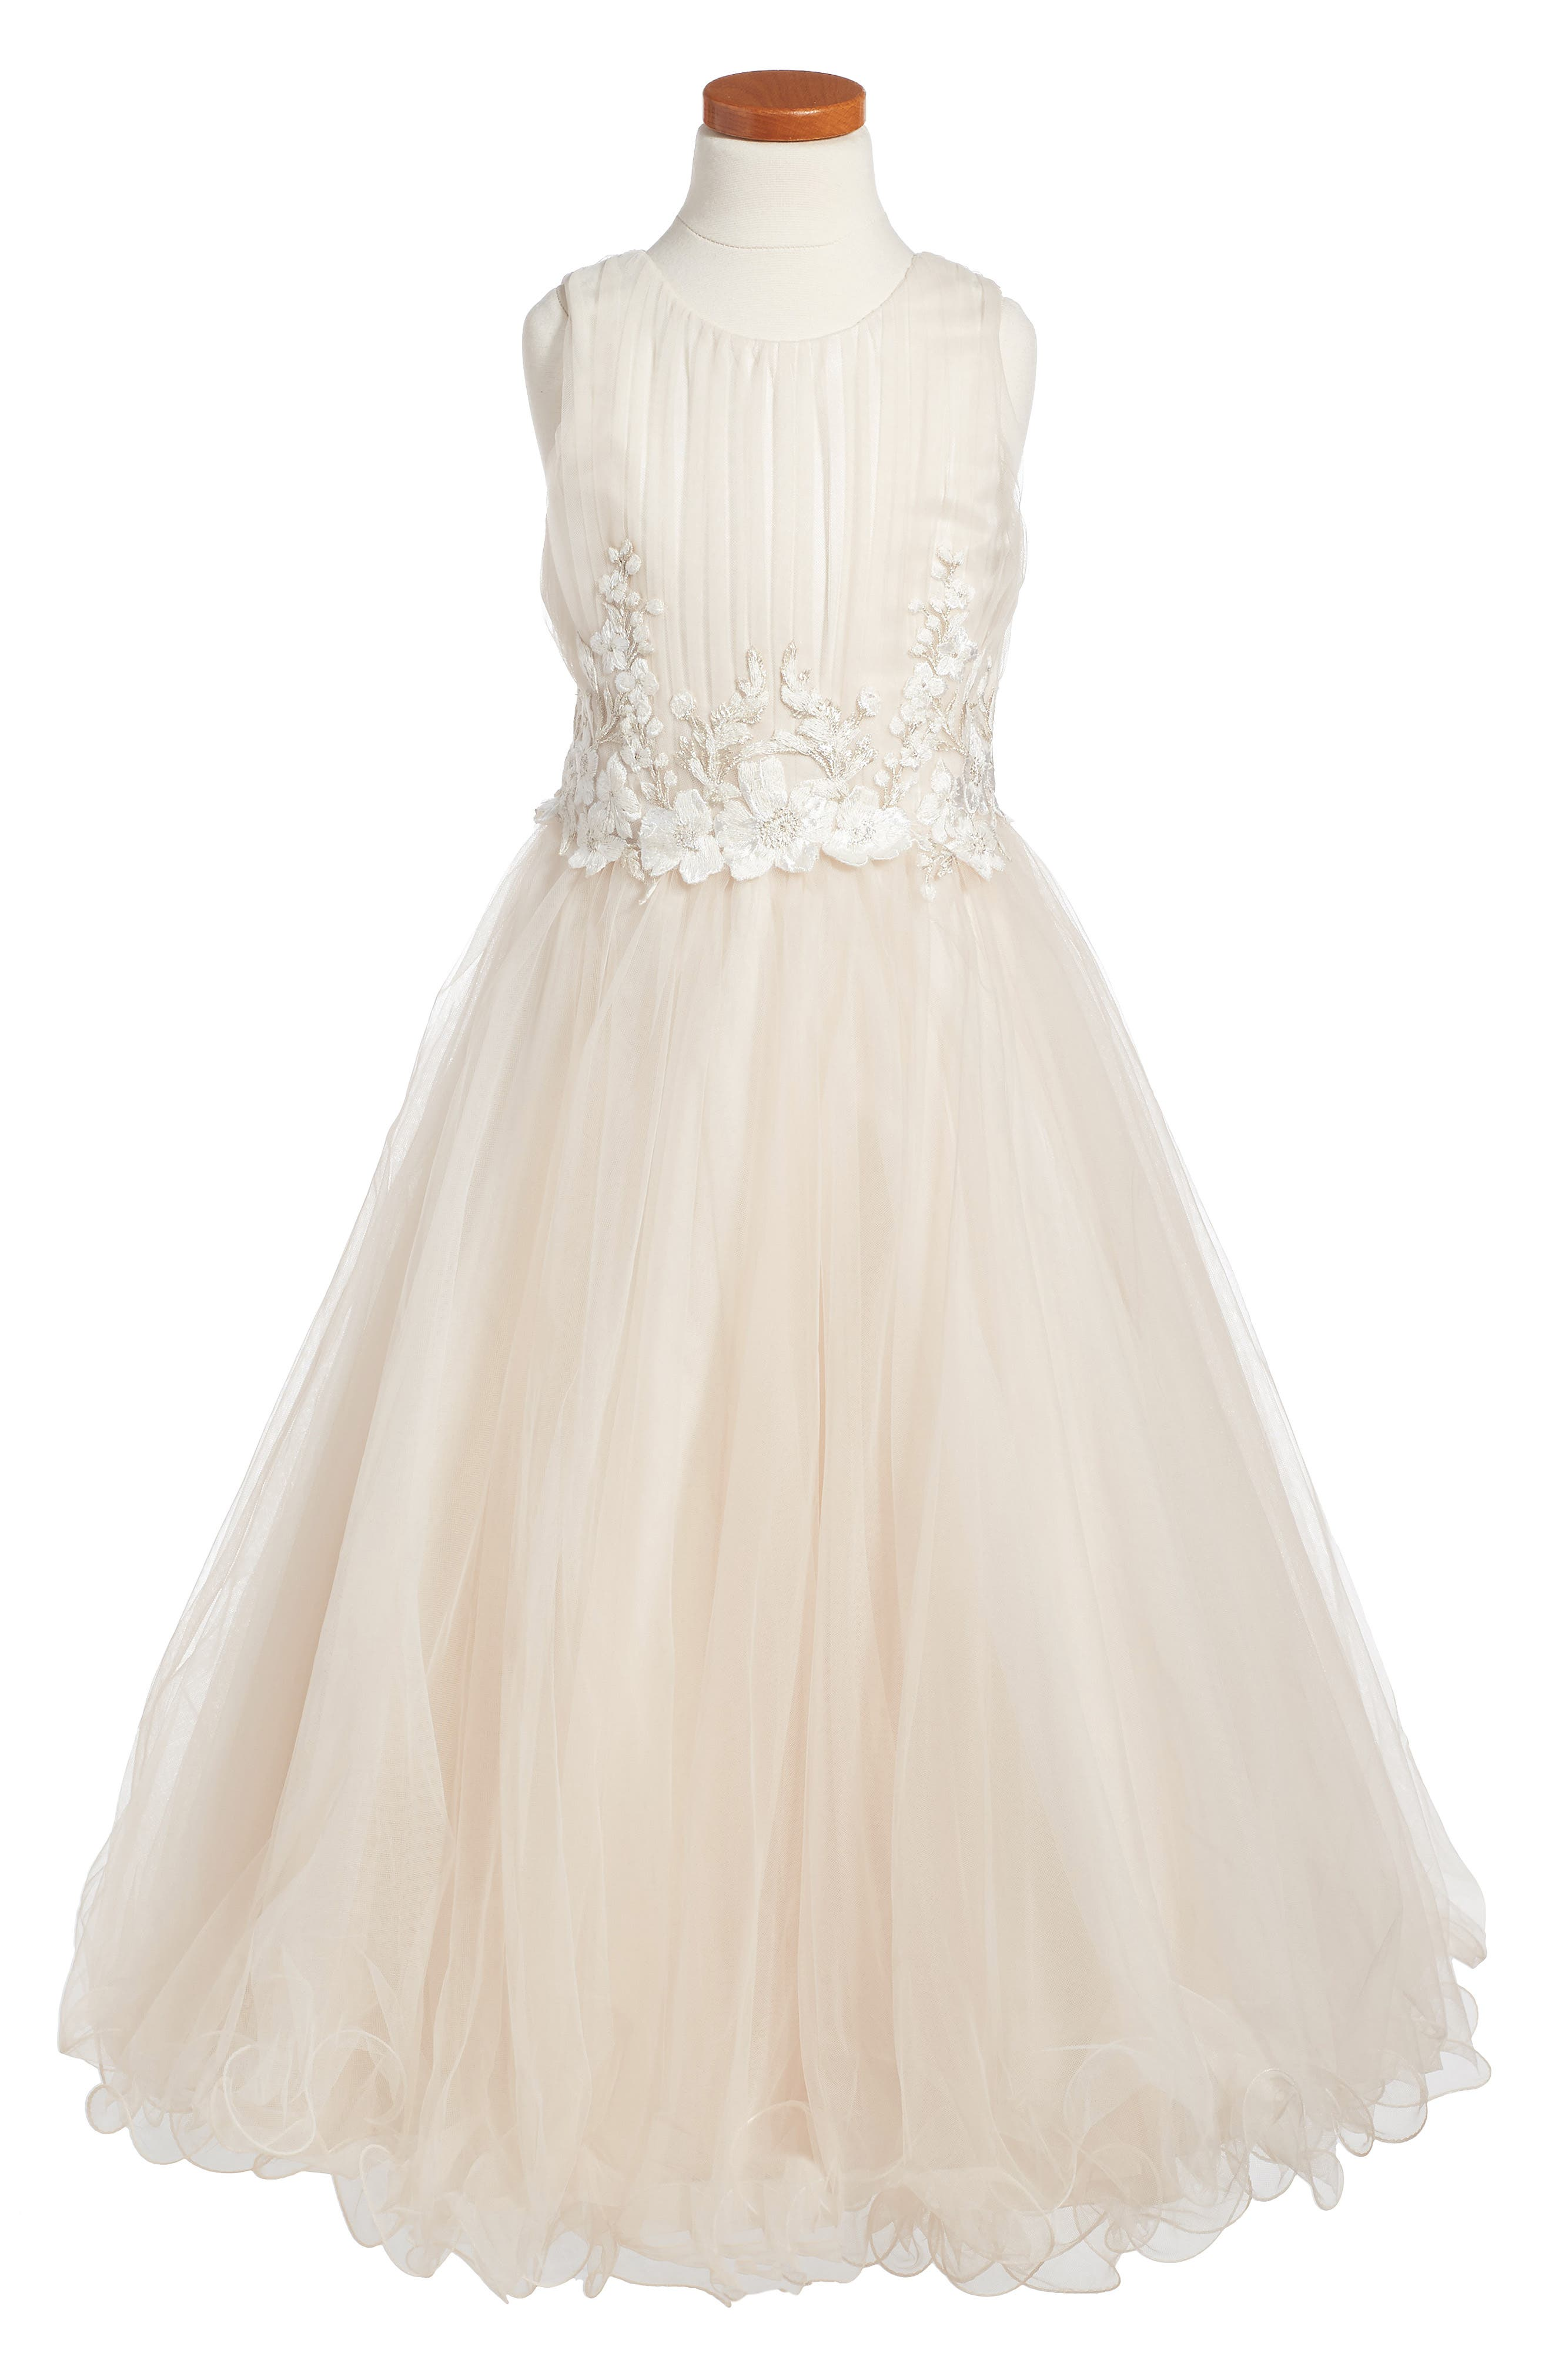 Lace & Tulle Dress,                             Main thumbnail 1, color,                             Stone/ Oyster